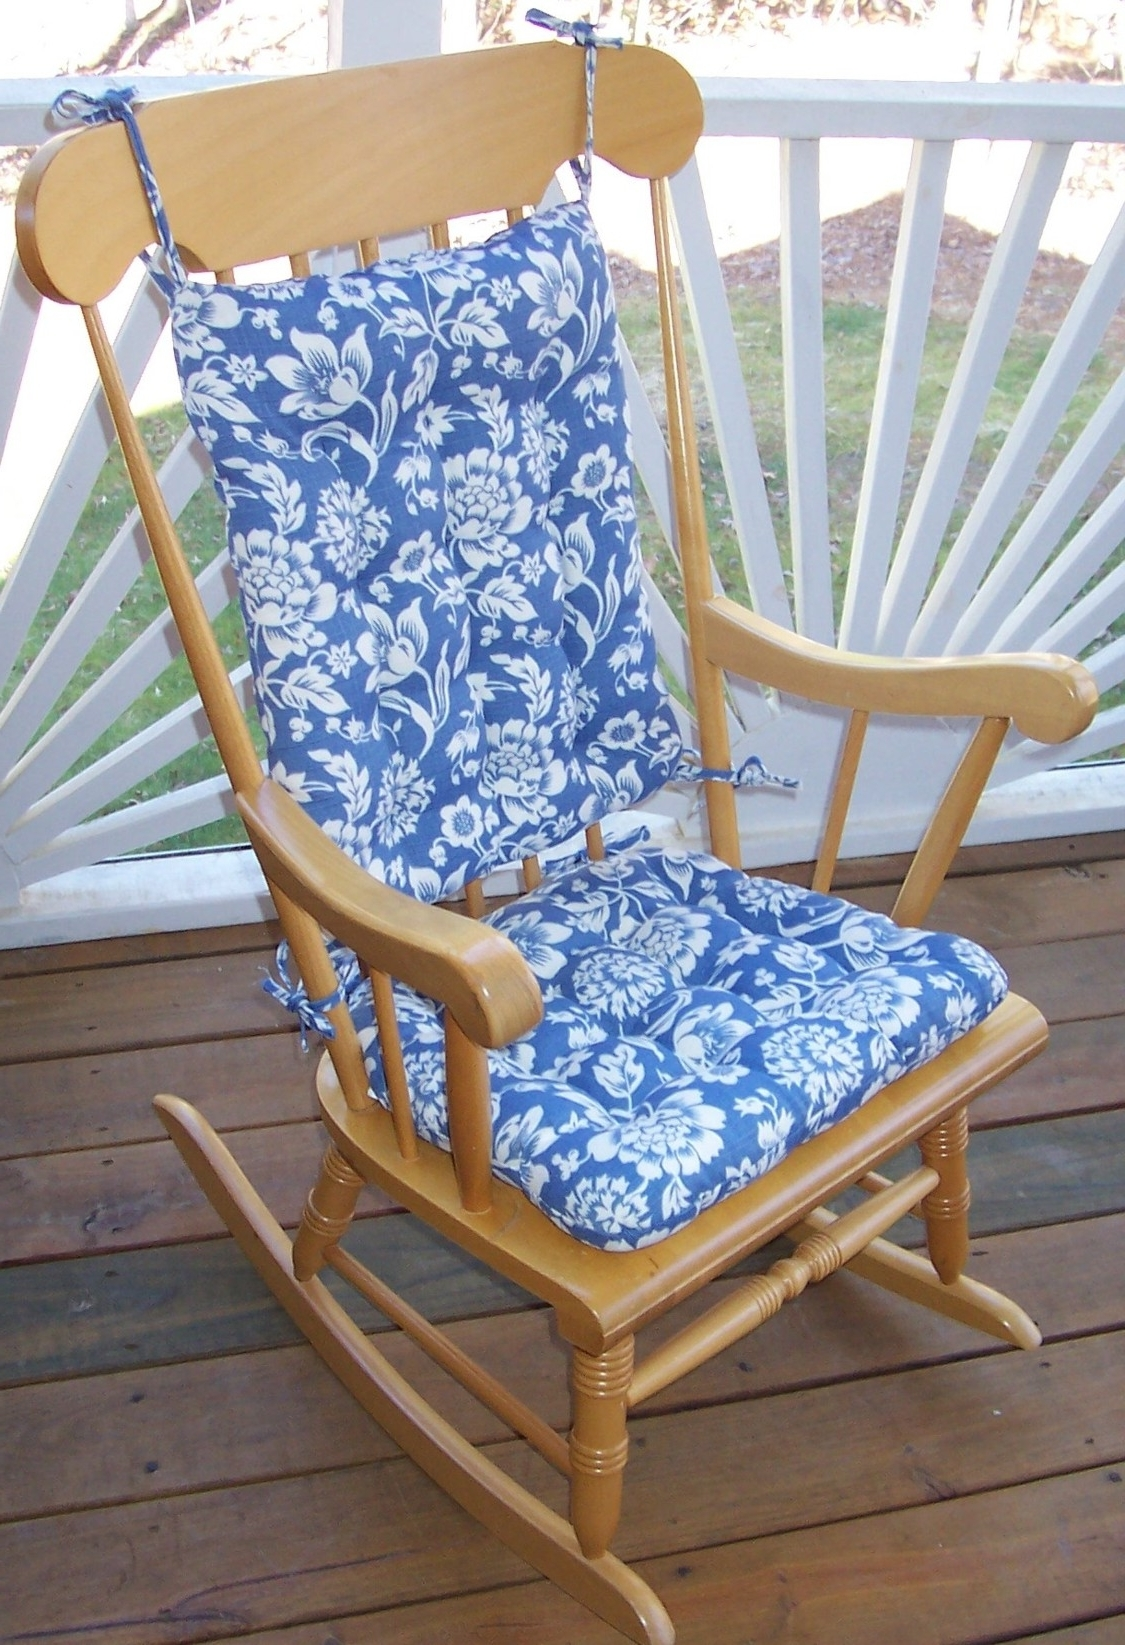 Fashionable Beautiful Outdoor Rocking Chair Cushions — All Modern Rocking Chairs Throughout Outdoor Rocking Chairs With Cushions (View 9 of 15)